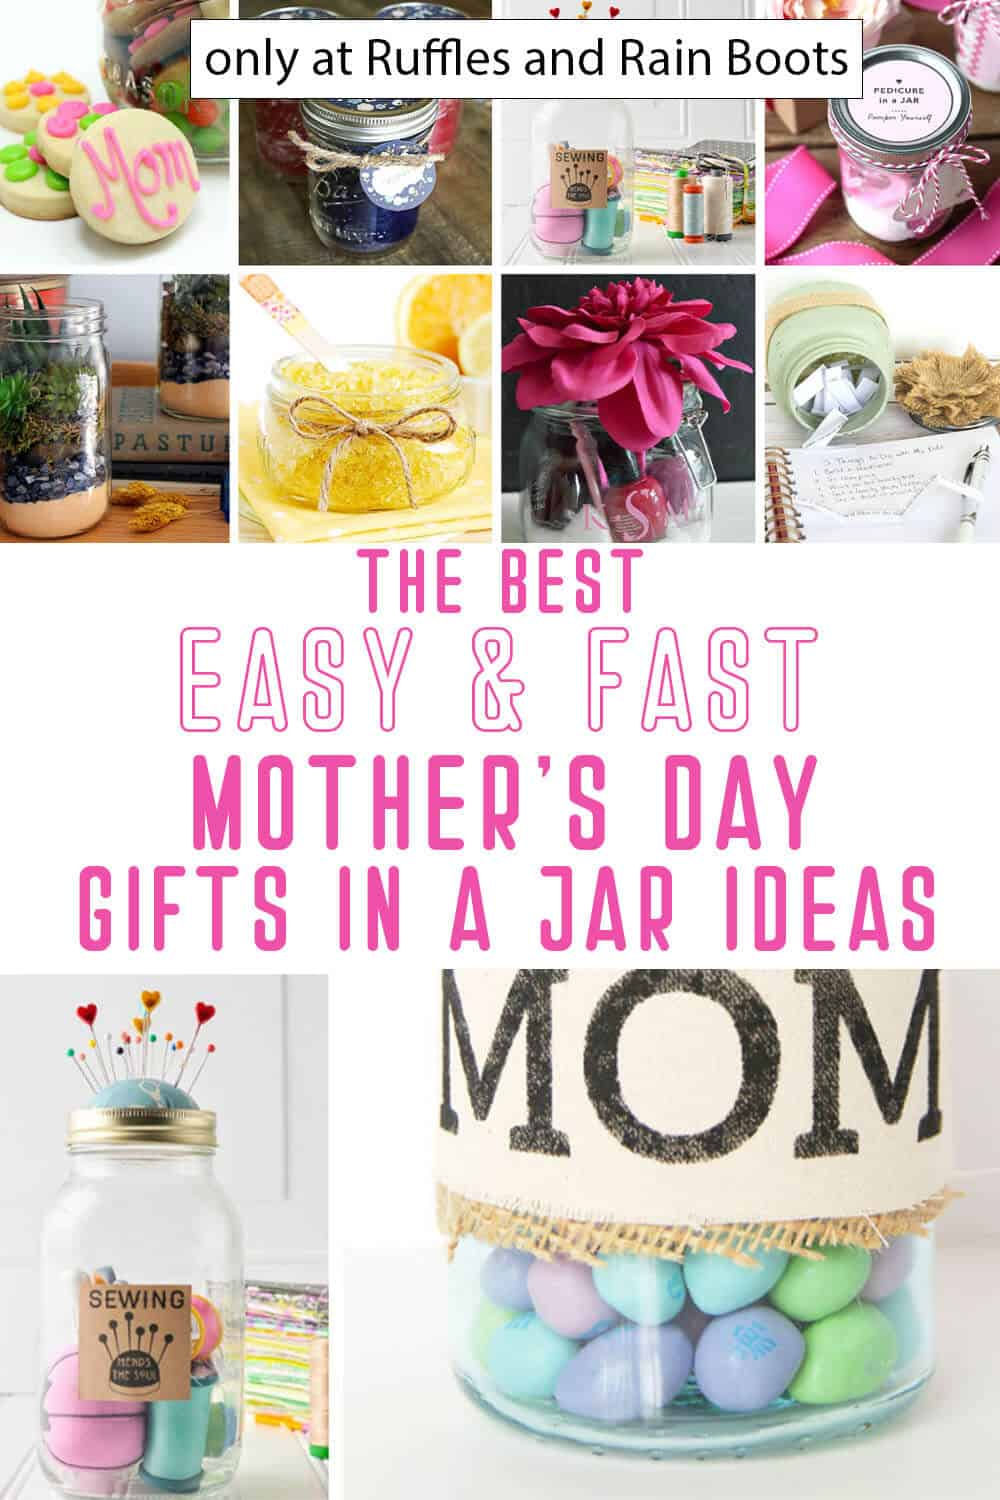 photo collage of mason jar gift ideas for mom with text which reads the best easy & fast mother's day gifts in a jar ideas